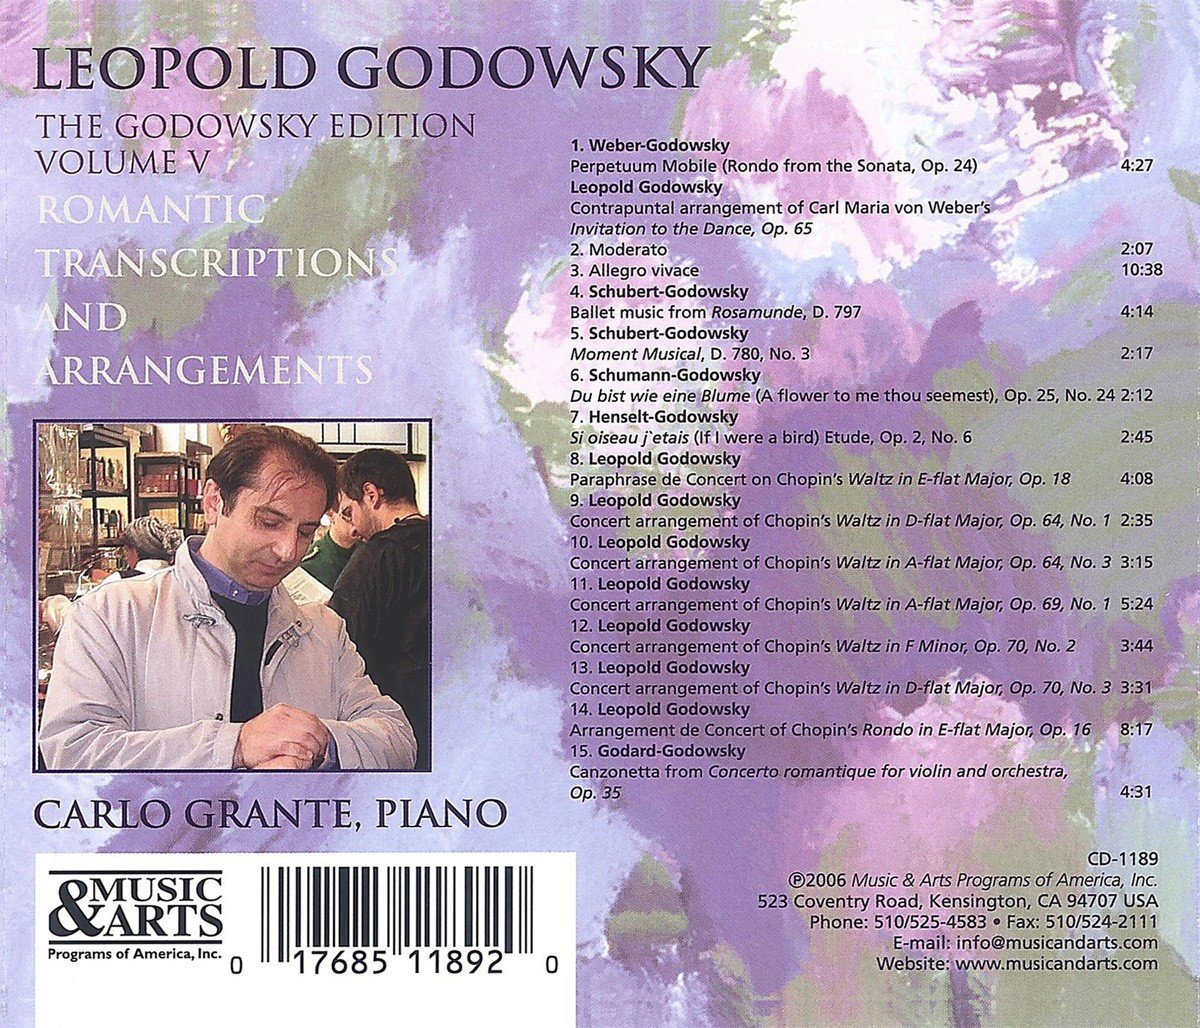 Godowsky Edition Vol. V: Romantic Transcriptions & Arrangements by Leopold Godowsky by Music & Arts Programs